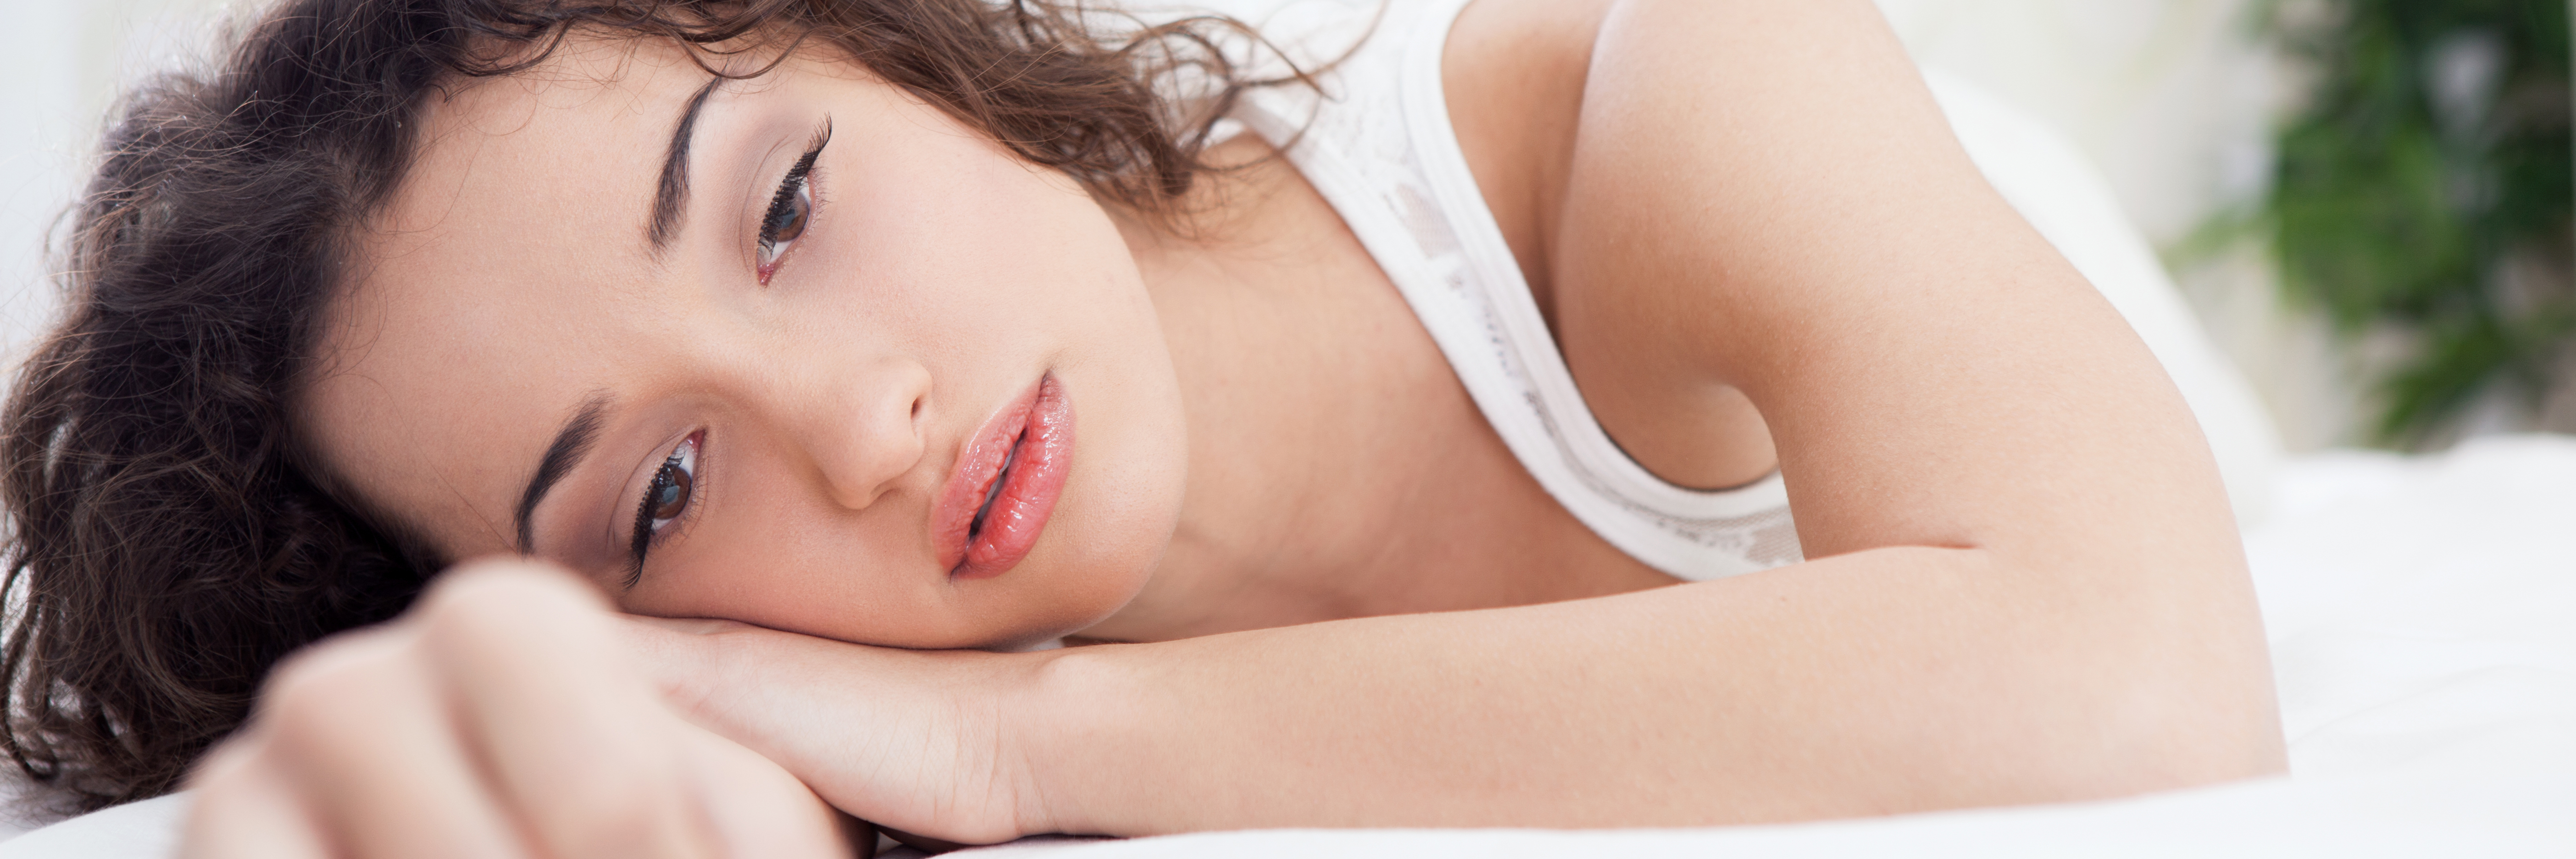 young woman brown hair lying in bed unhappy